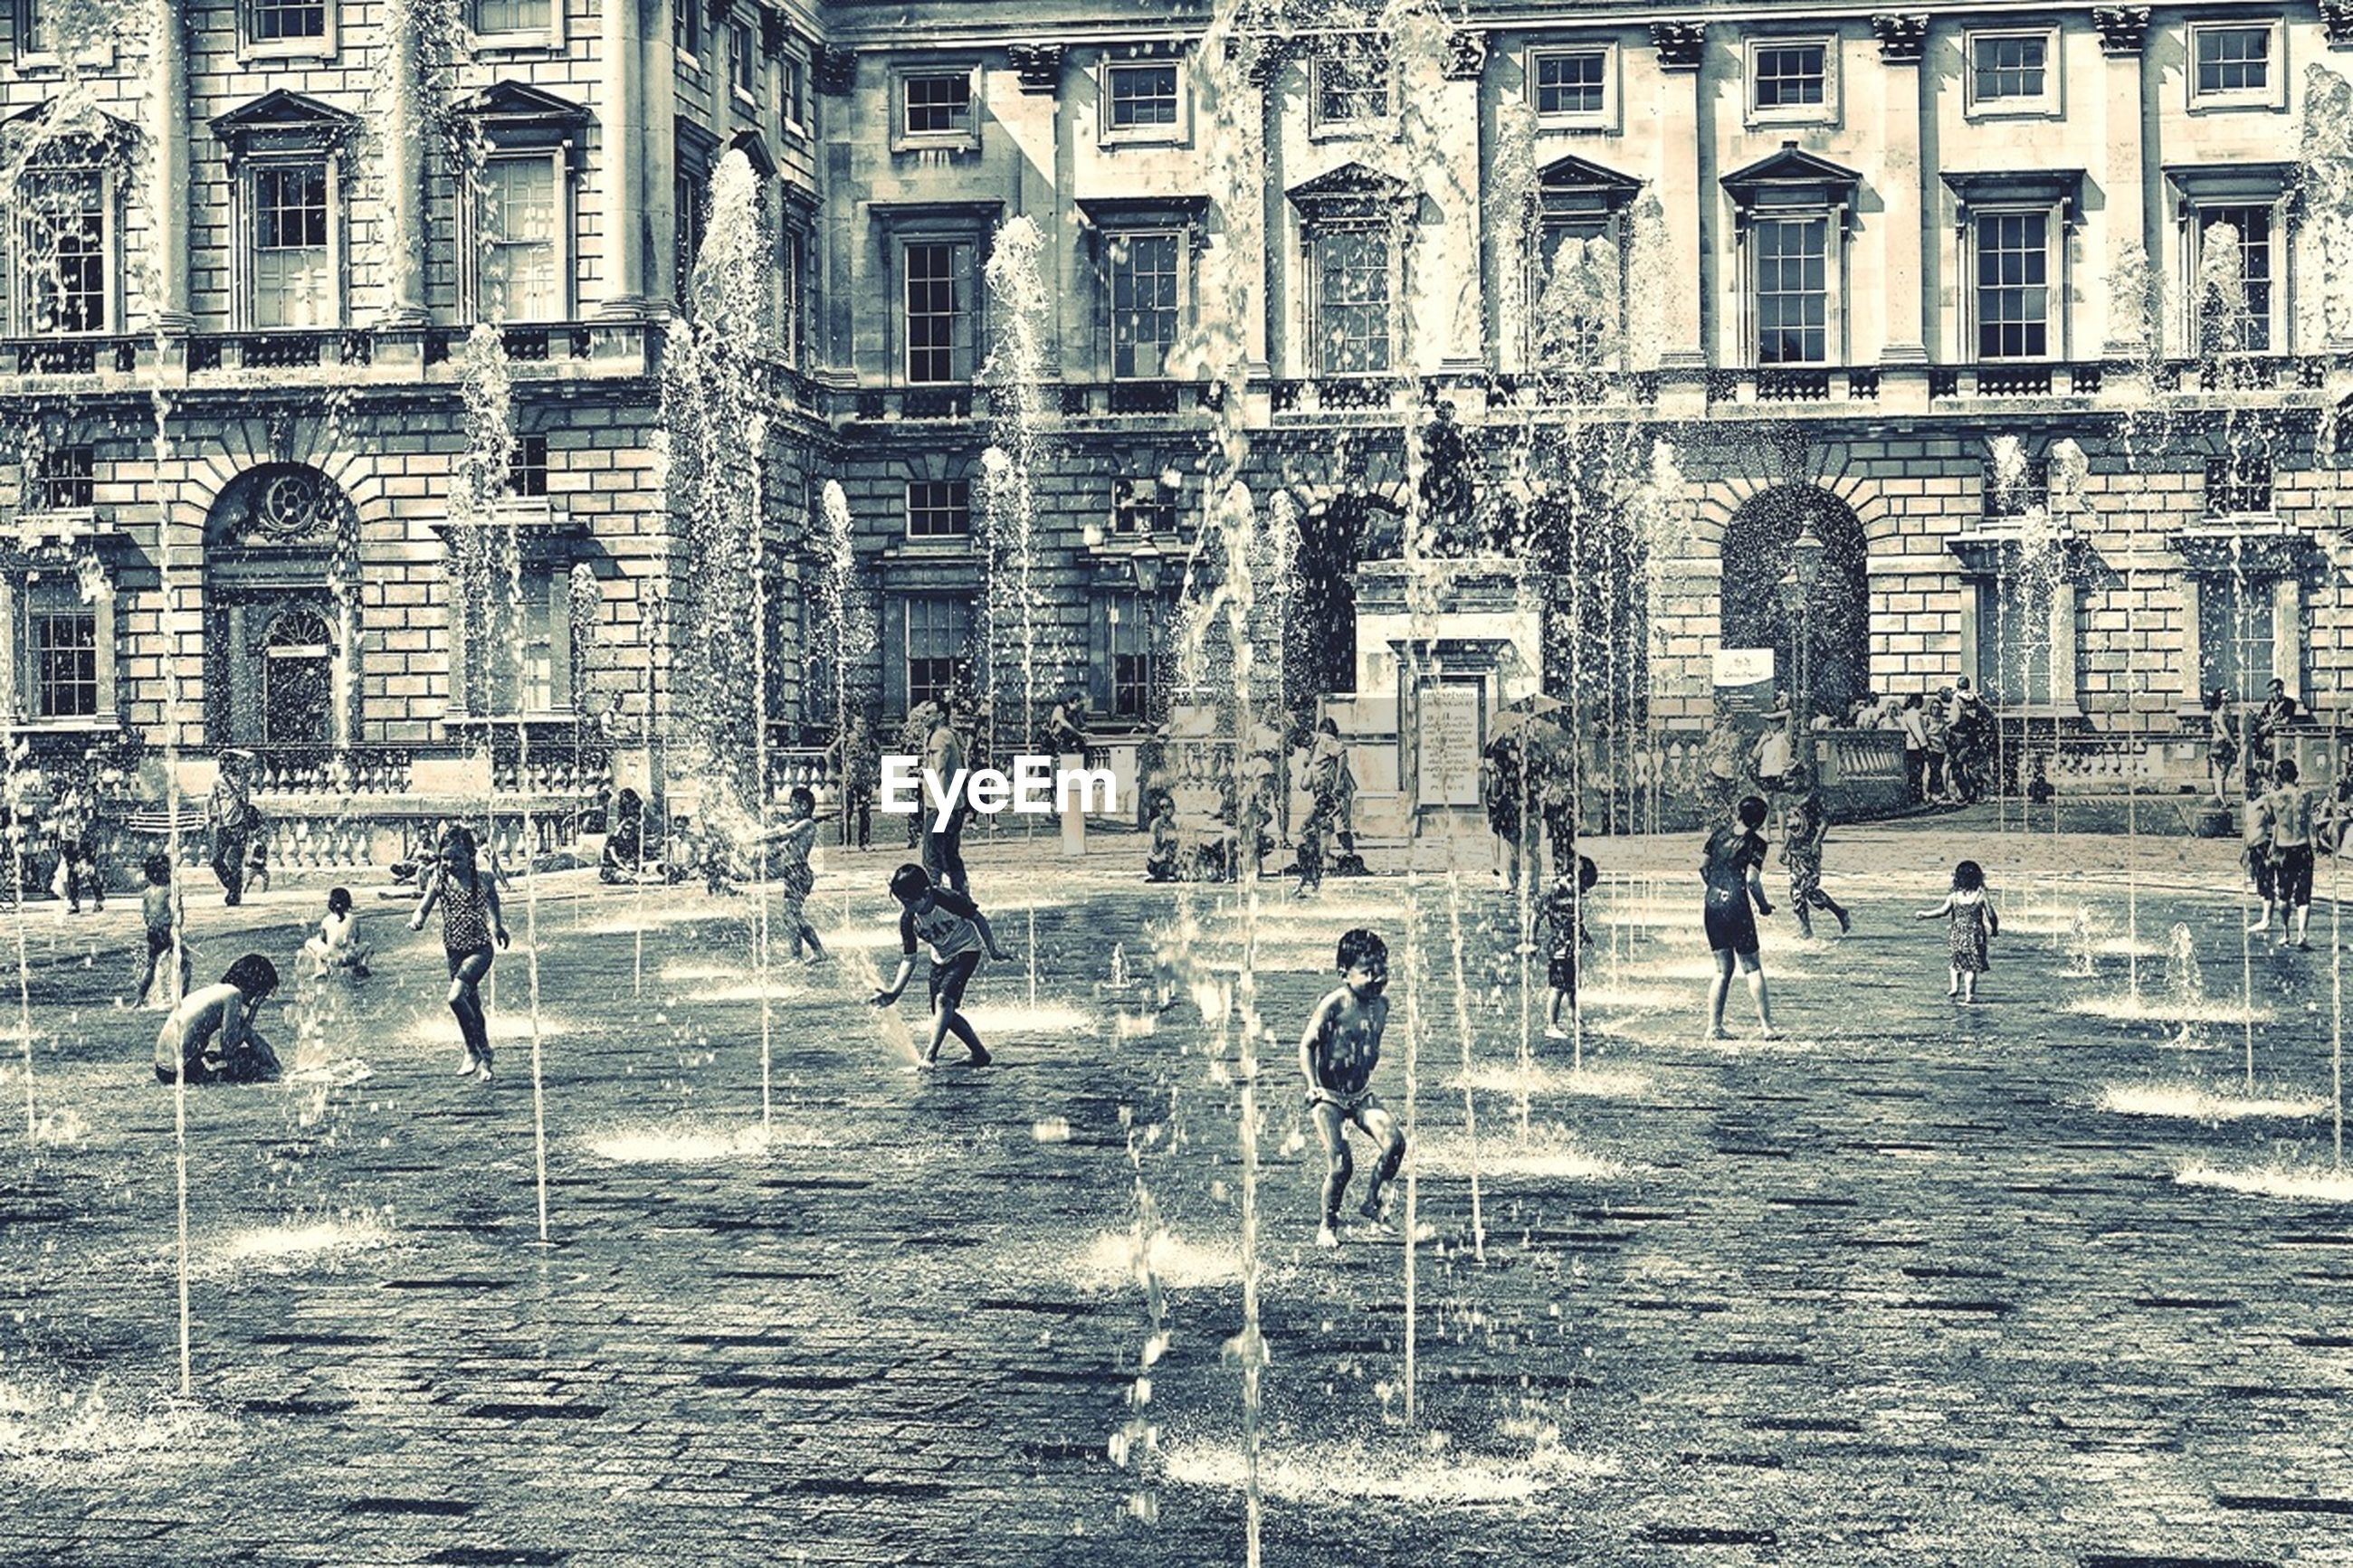 architecture, building exterior, built structure, large group of people, lifestyles, fountain, person, men, leisure activity, water, walking, tourist, city, city life, mixed age range, motion, town square, tourism, travel destinations